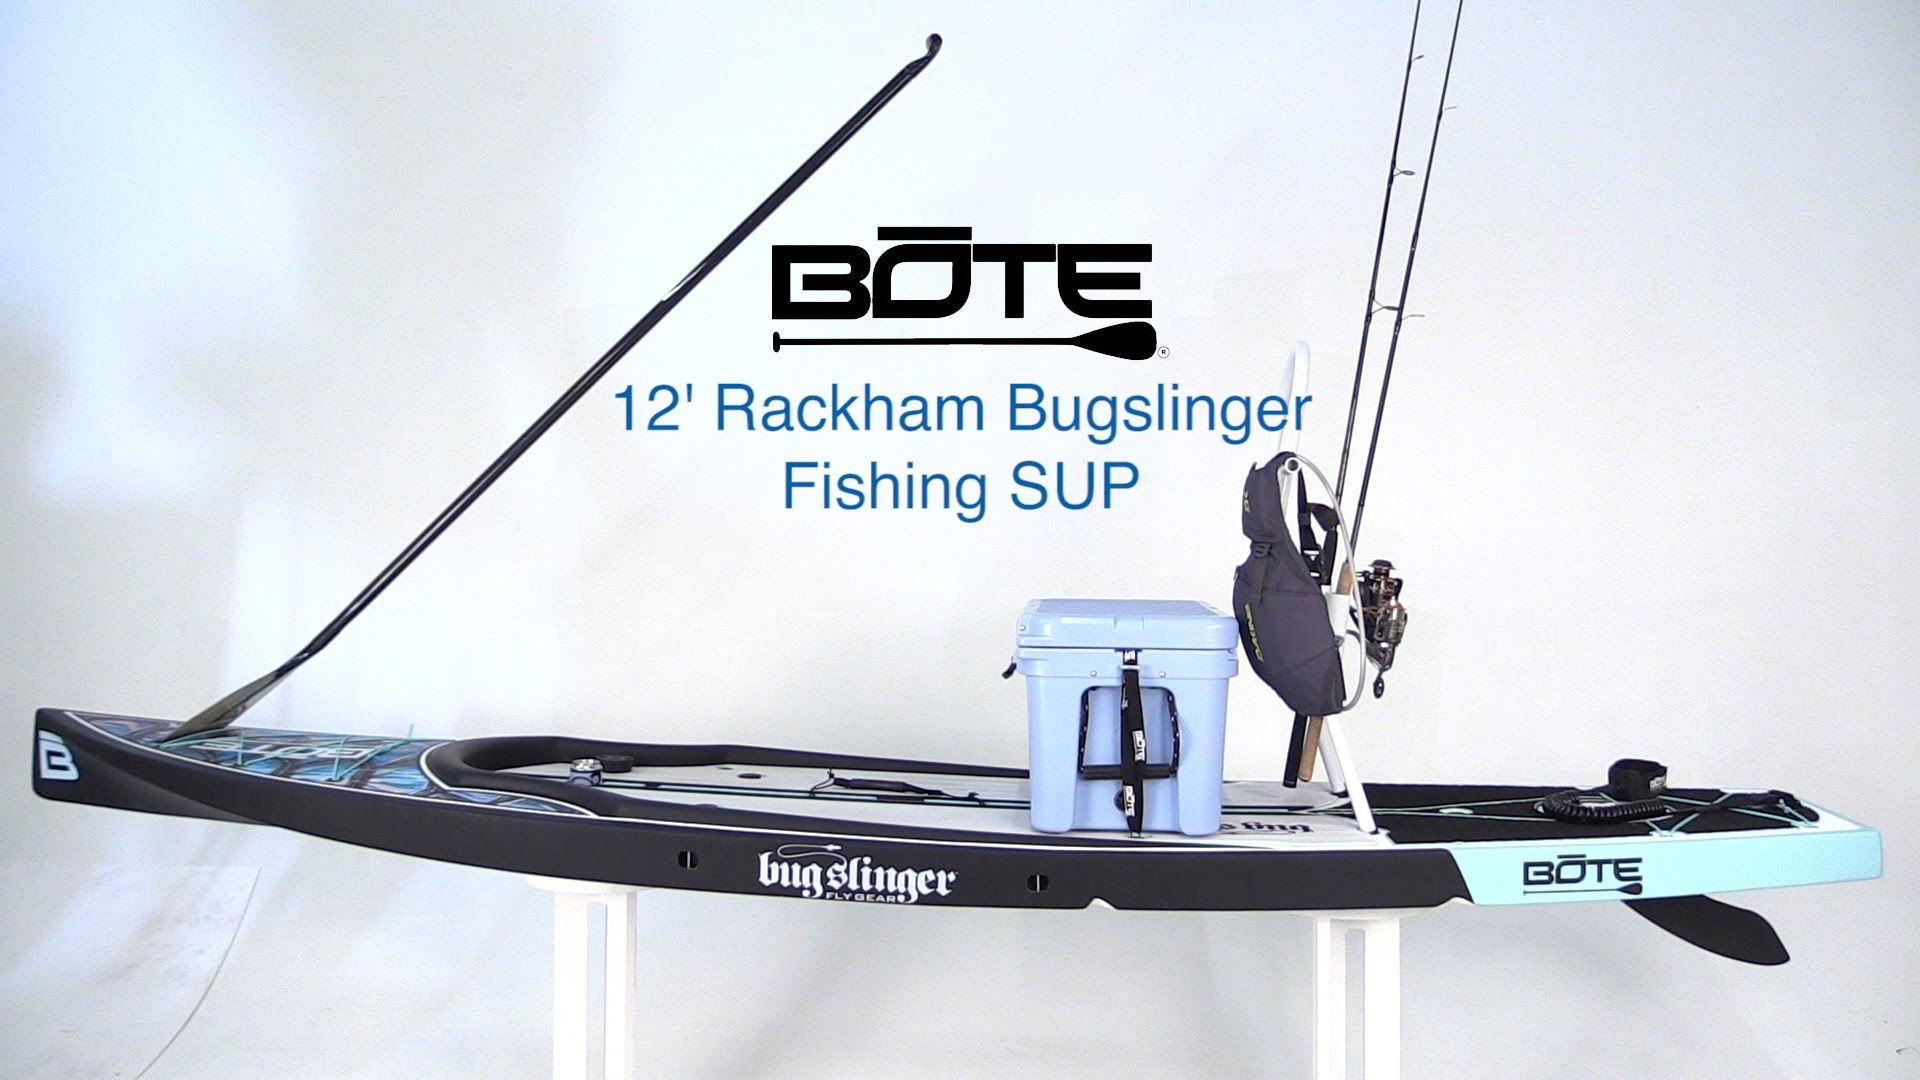 Bote 12 39 rackham bugslinger fishing sup west marine for Paddle board fishing accessories